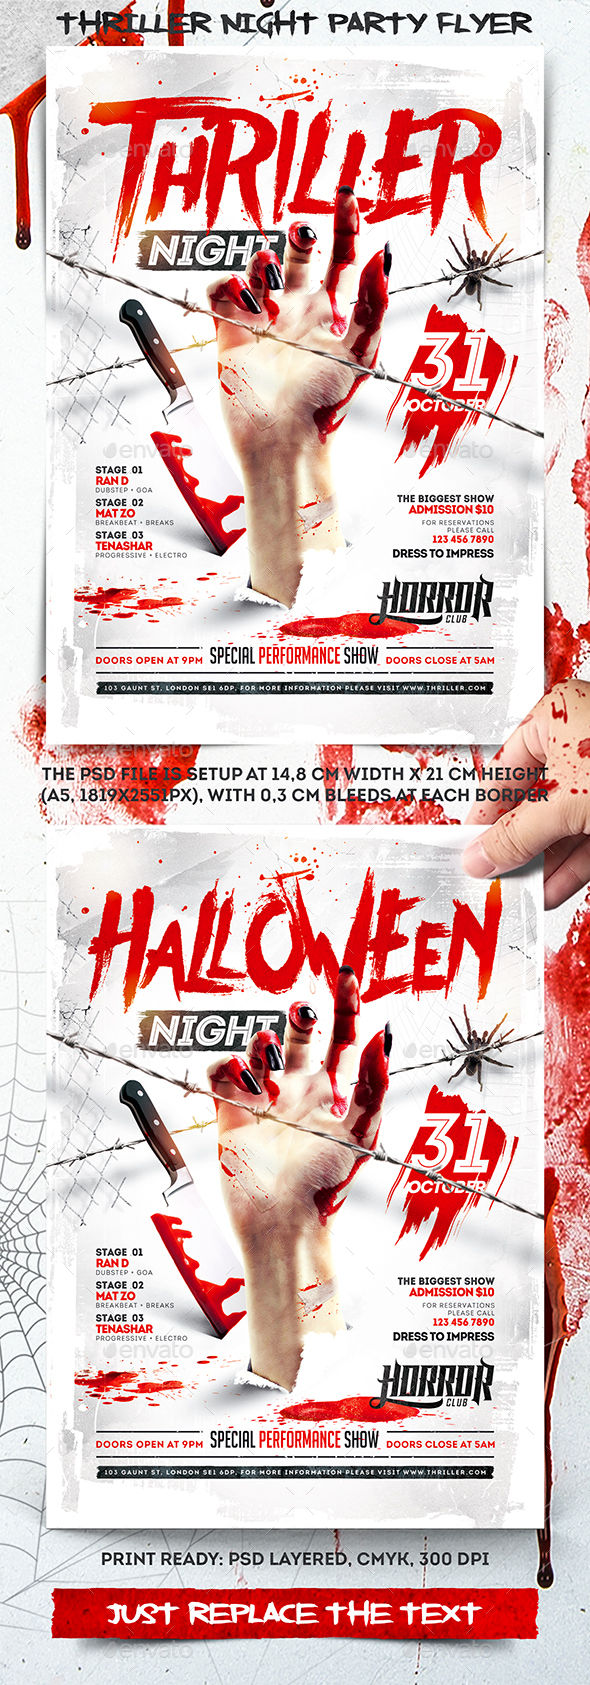 Thriller Night Party Flyer by 4ustudio (Halloween party flyer)